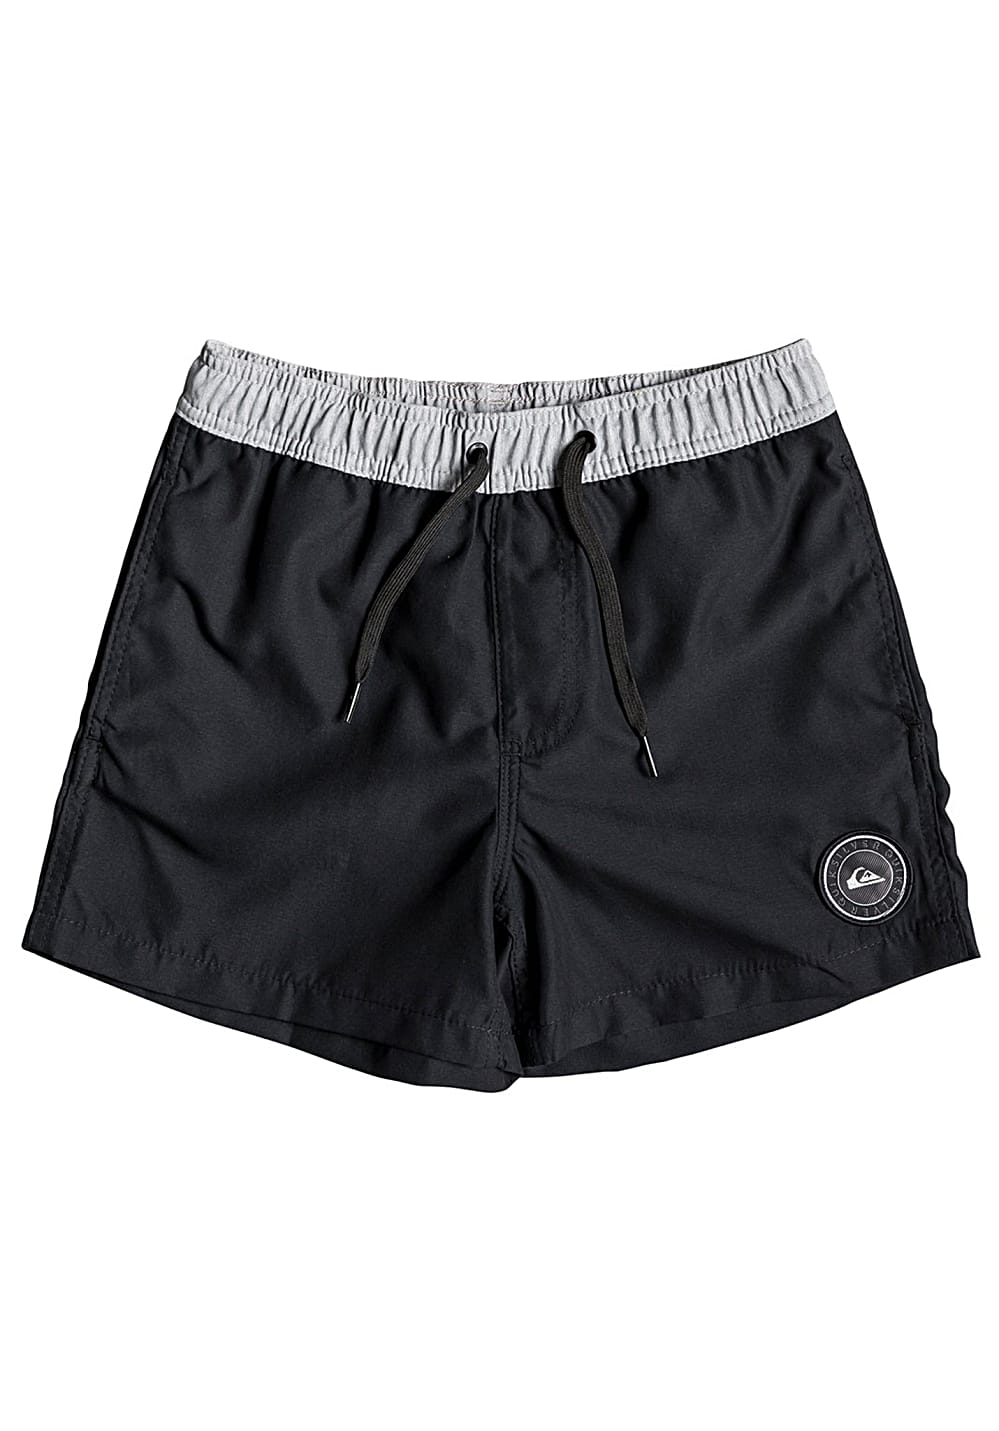 Boysbademode - Quiksilver Glitch Volley 13 Boardshorts für Jungs Schwarz - Onlineshop Planet Sports